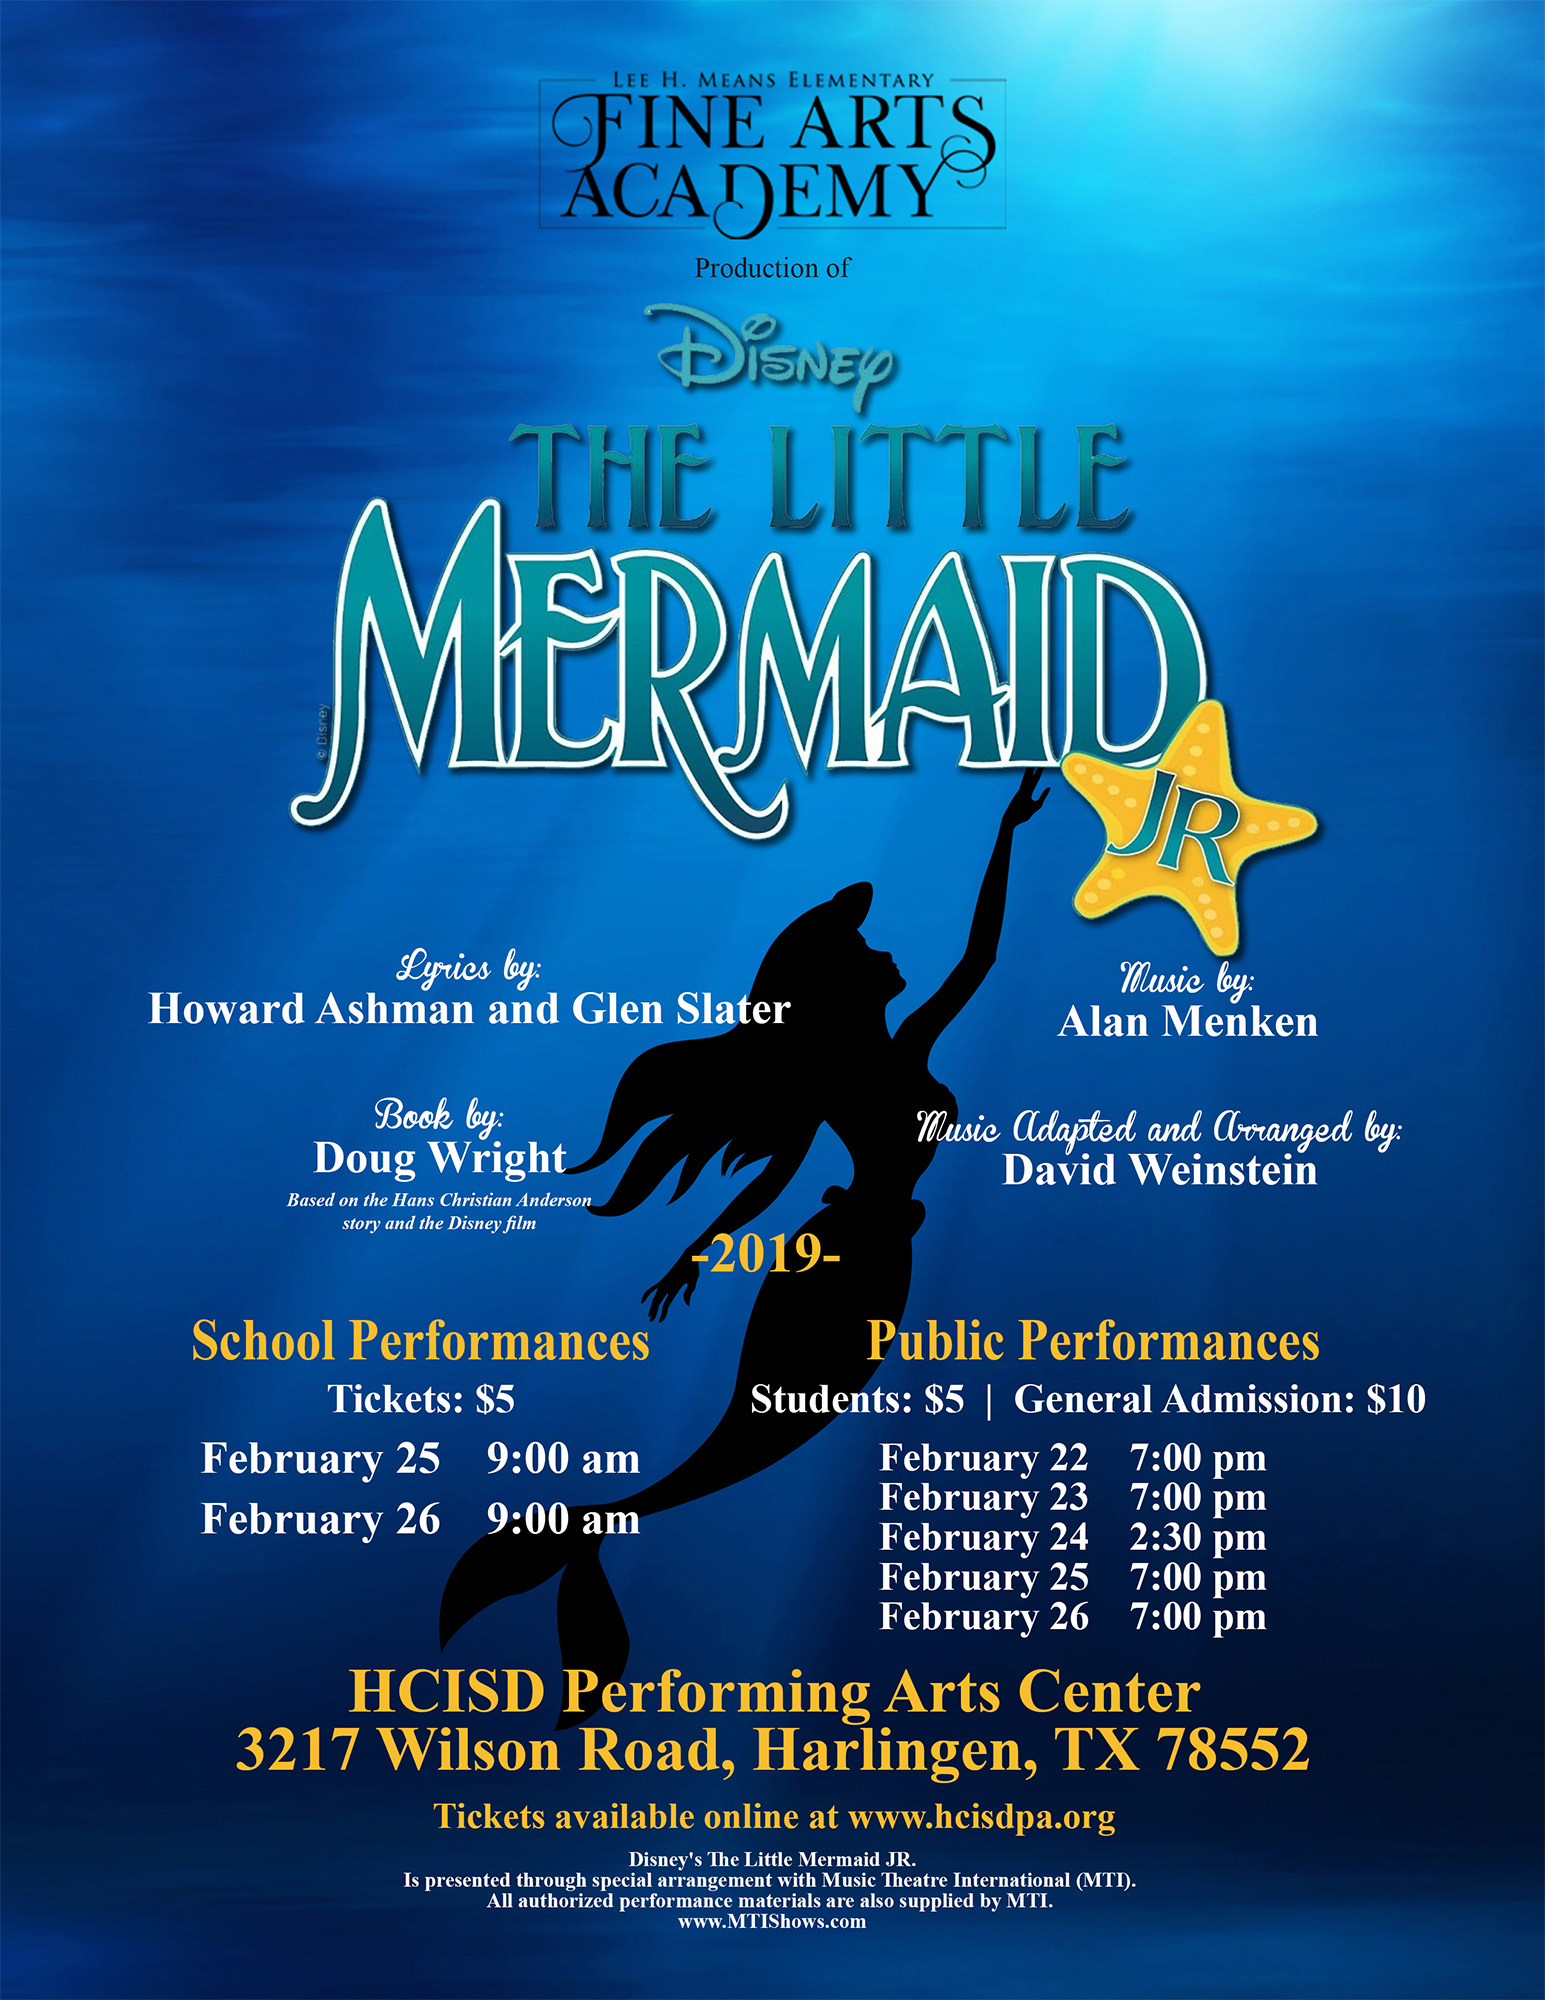 Lee Means Fine Arts Academy presents Disney's The Little Mermaid Jr.